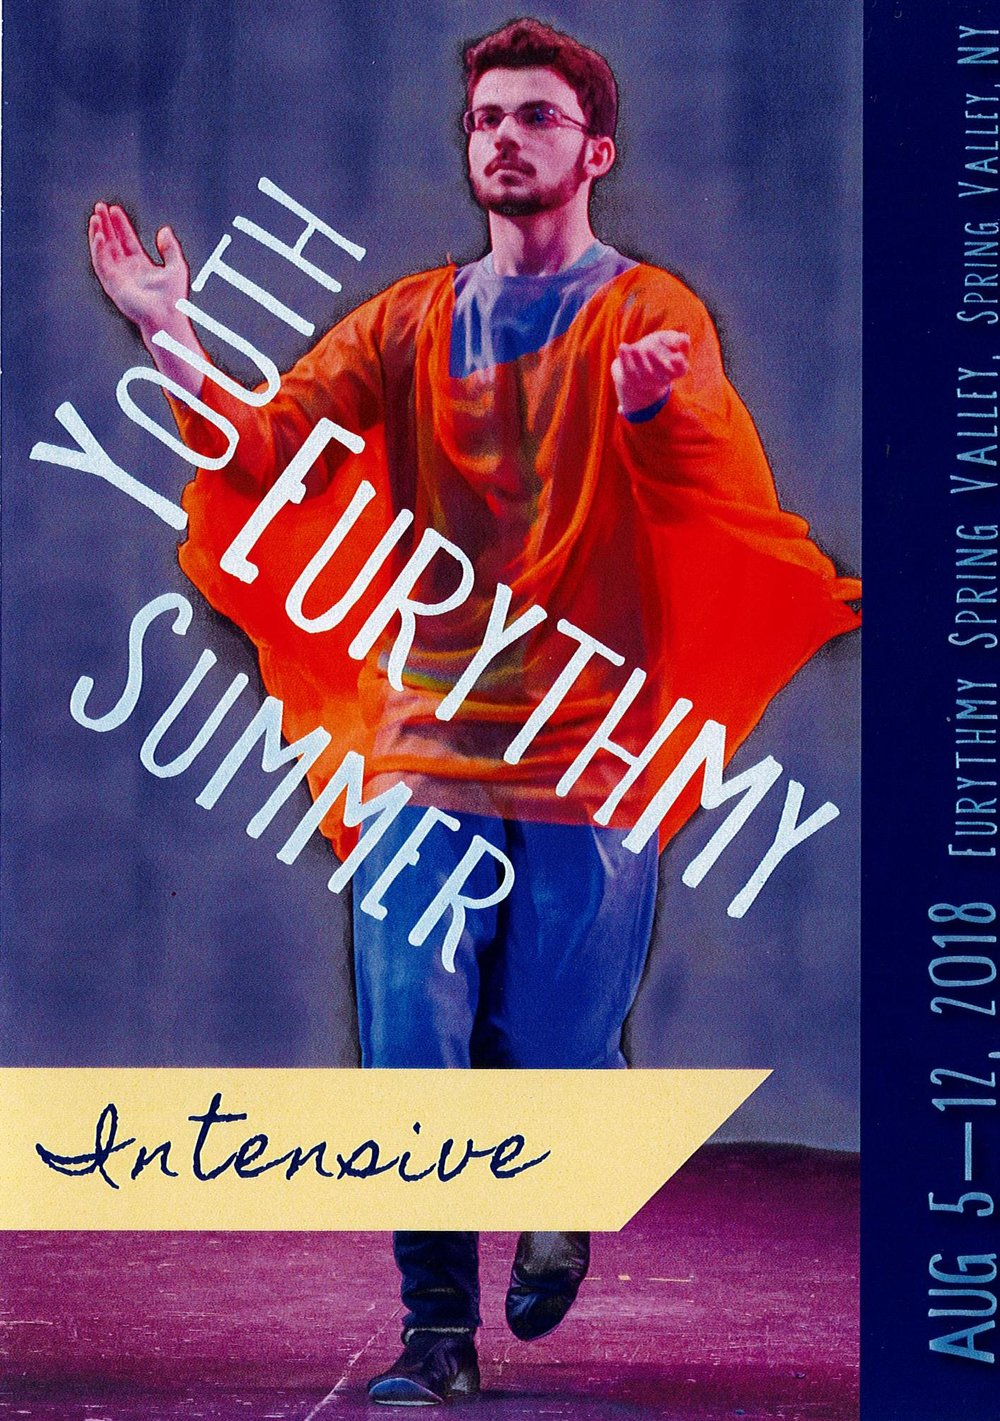 Eurythmy Intensives for Young Adults - Eurythmy Spring Valley hosts intensive weeks of eurythmy for 16-20 year olds.Contact Virginia Hermann @ virginia.hermann@gmail.com